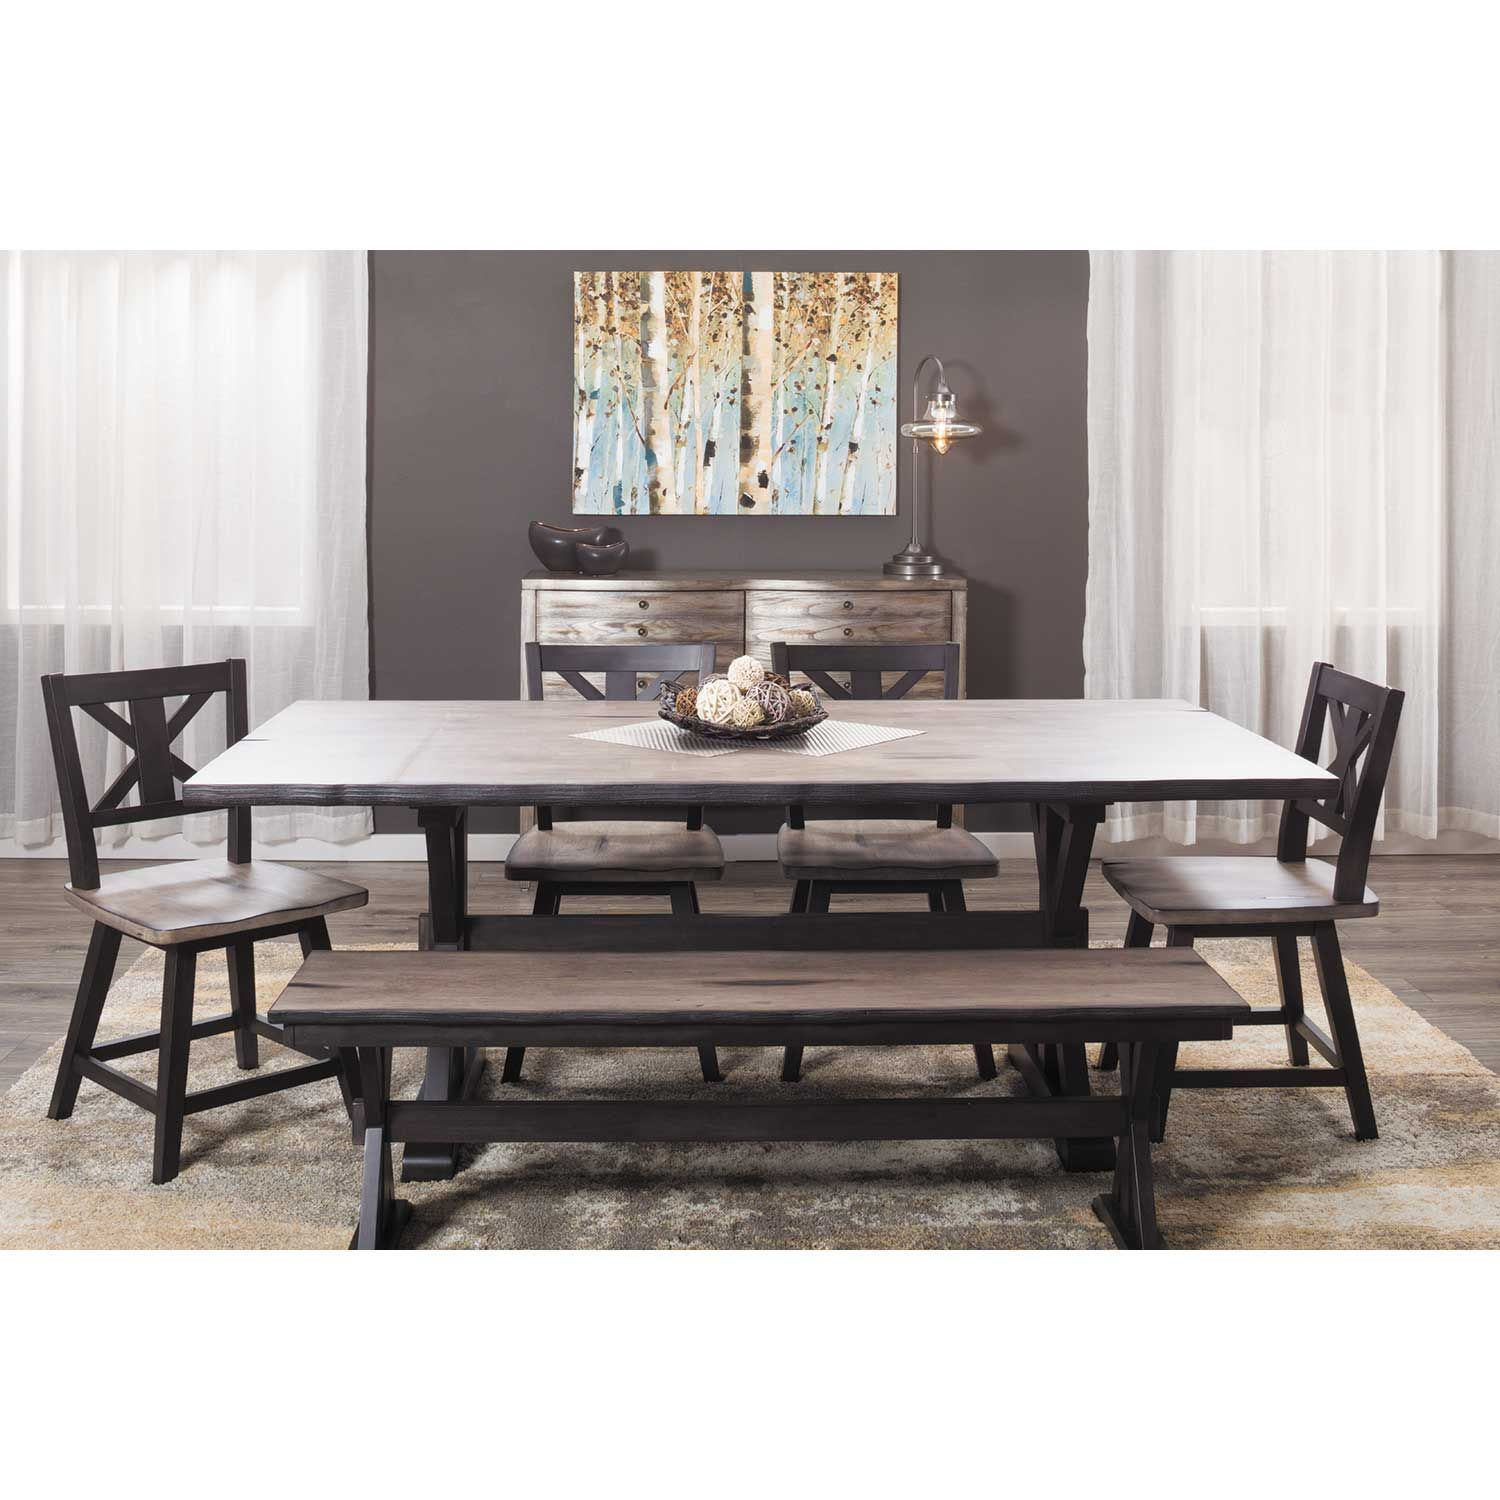 ... Picture Of Urban Farmhouse Dining Table ...